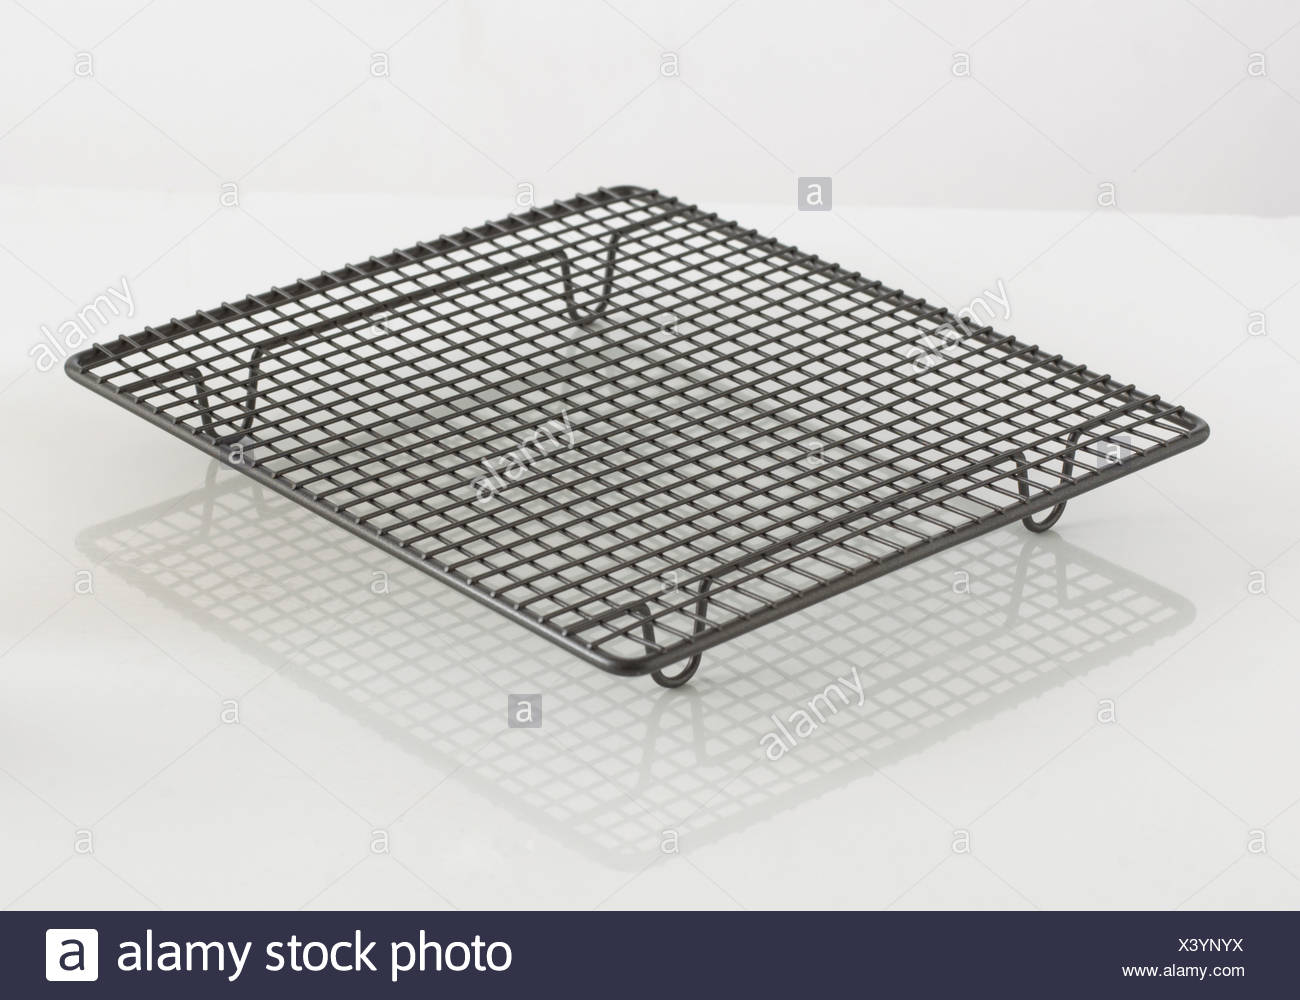 Wire Cooling Rack Stockfotos & Wire Cooling Rack Bilder - Alamy